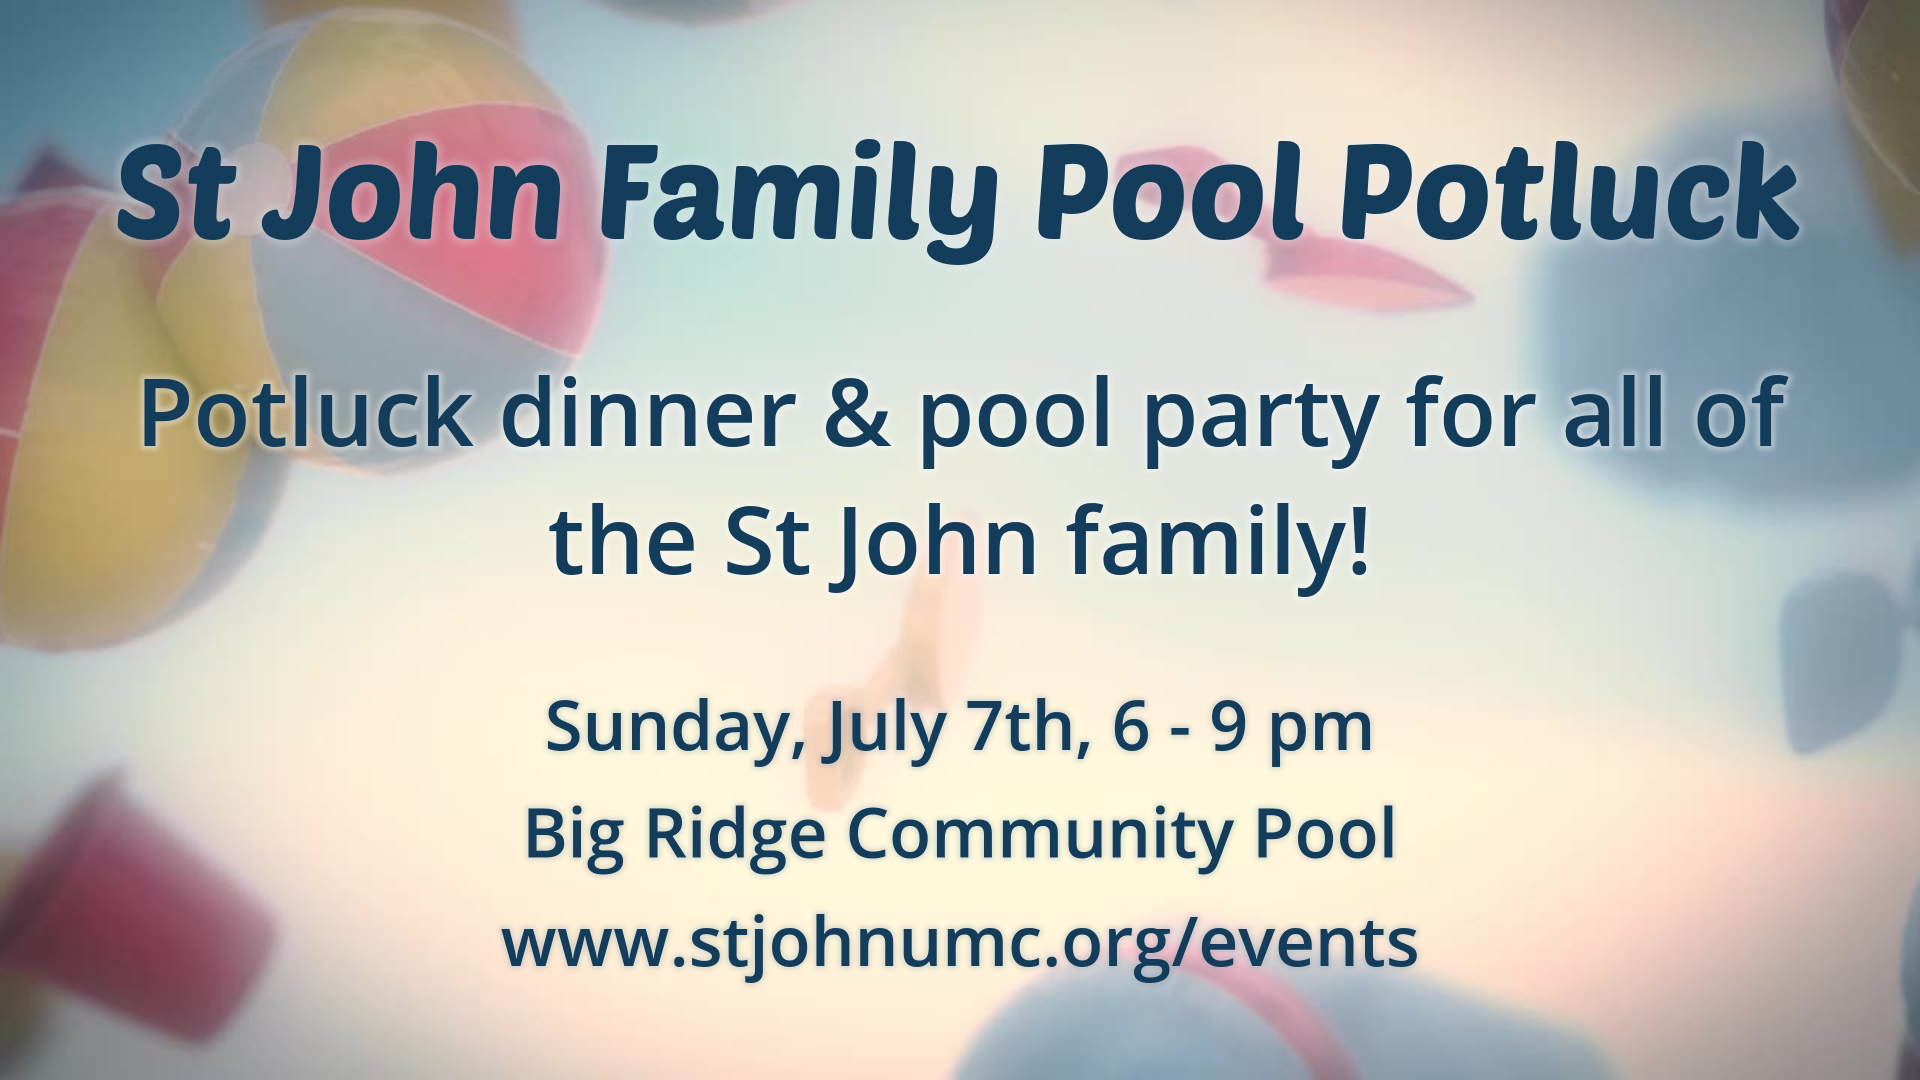 St John Family Pool Potluck